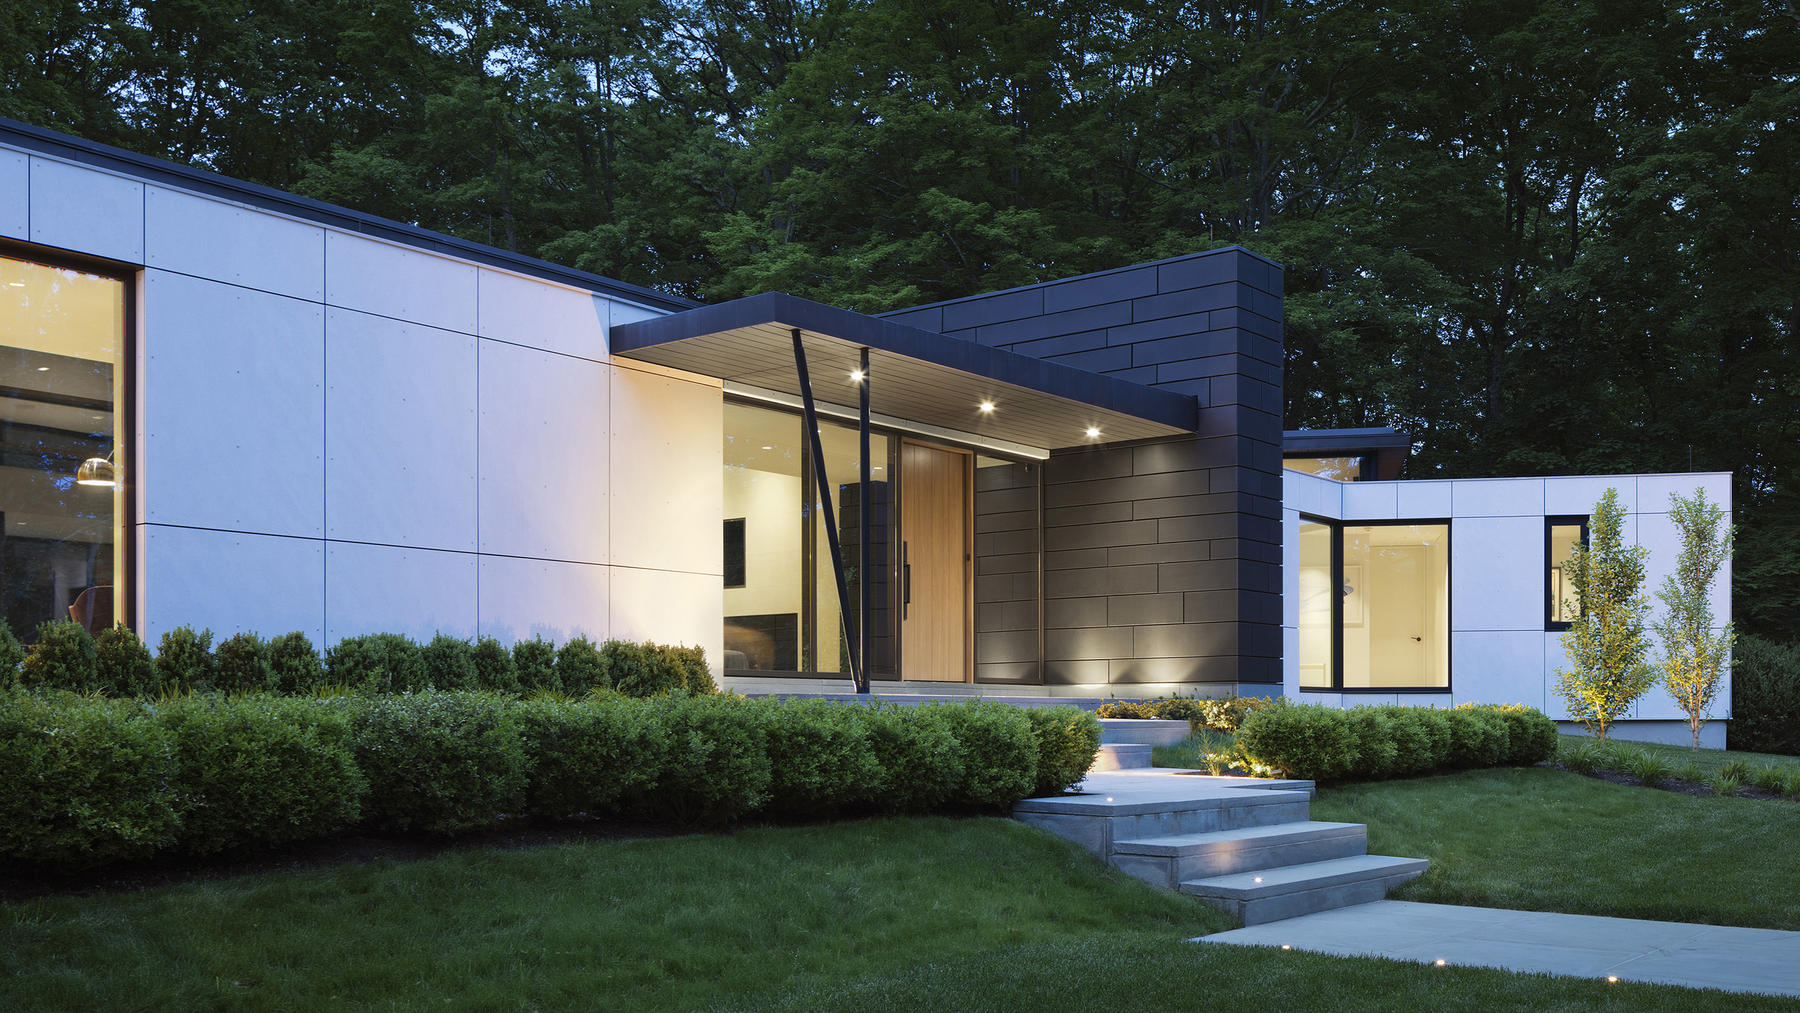 Amanda martocchio architecture i connecticut residential architect